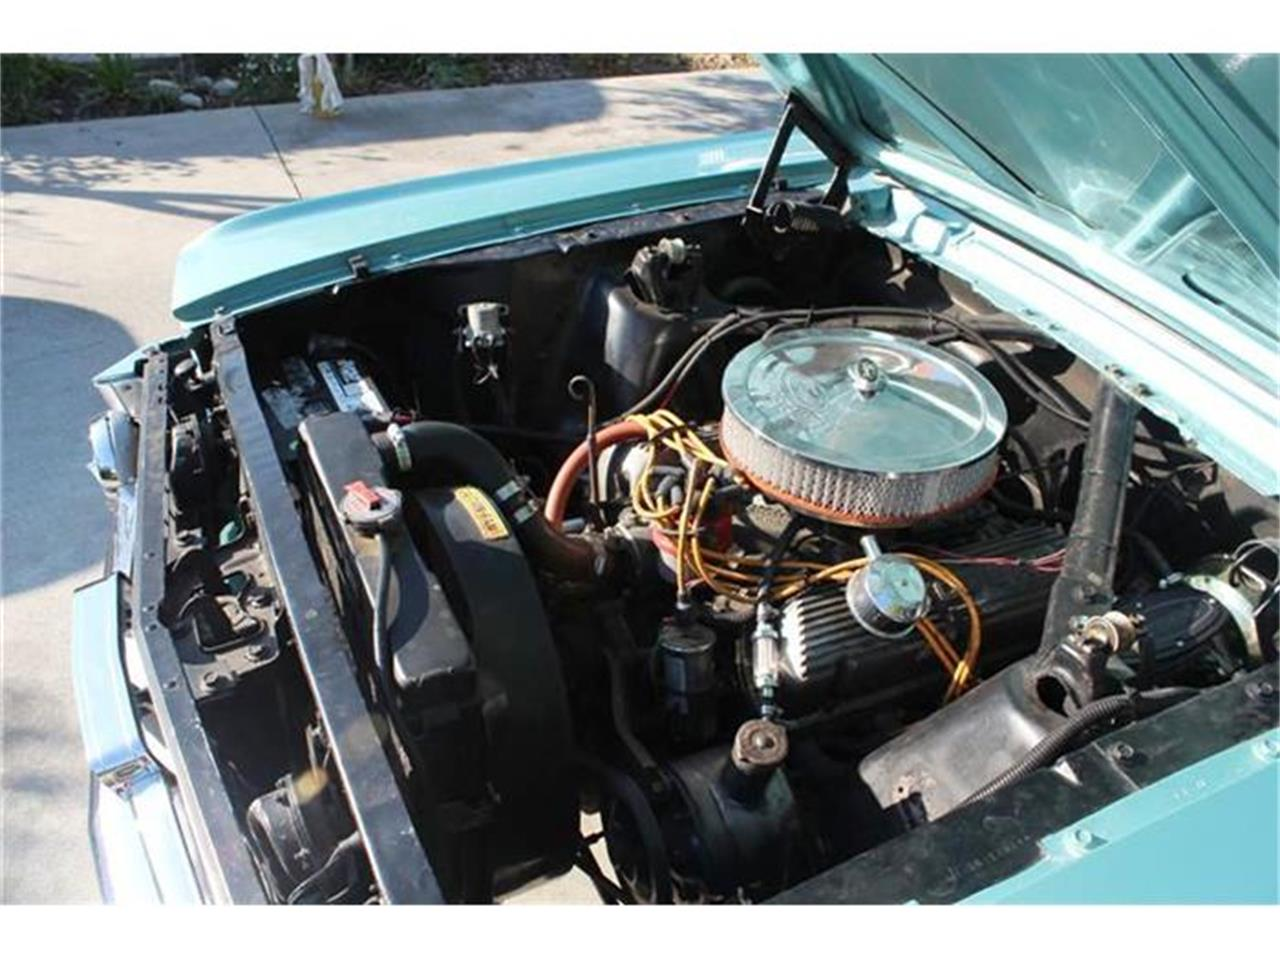 Large Picture of '66 Ford Mustang located in West Covina California - $40,000.00 Offered by a Private Seller - BFEI